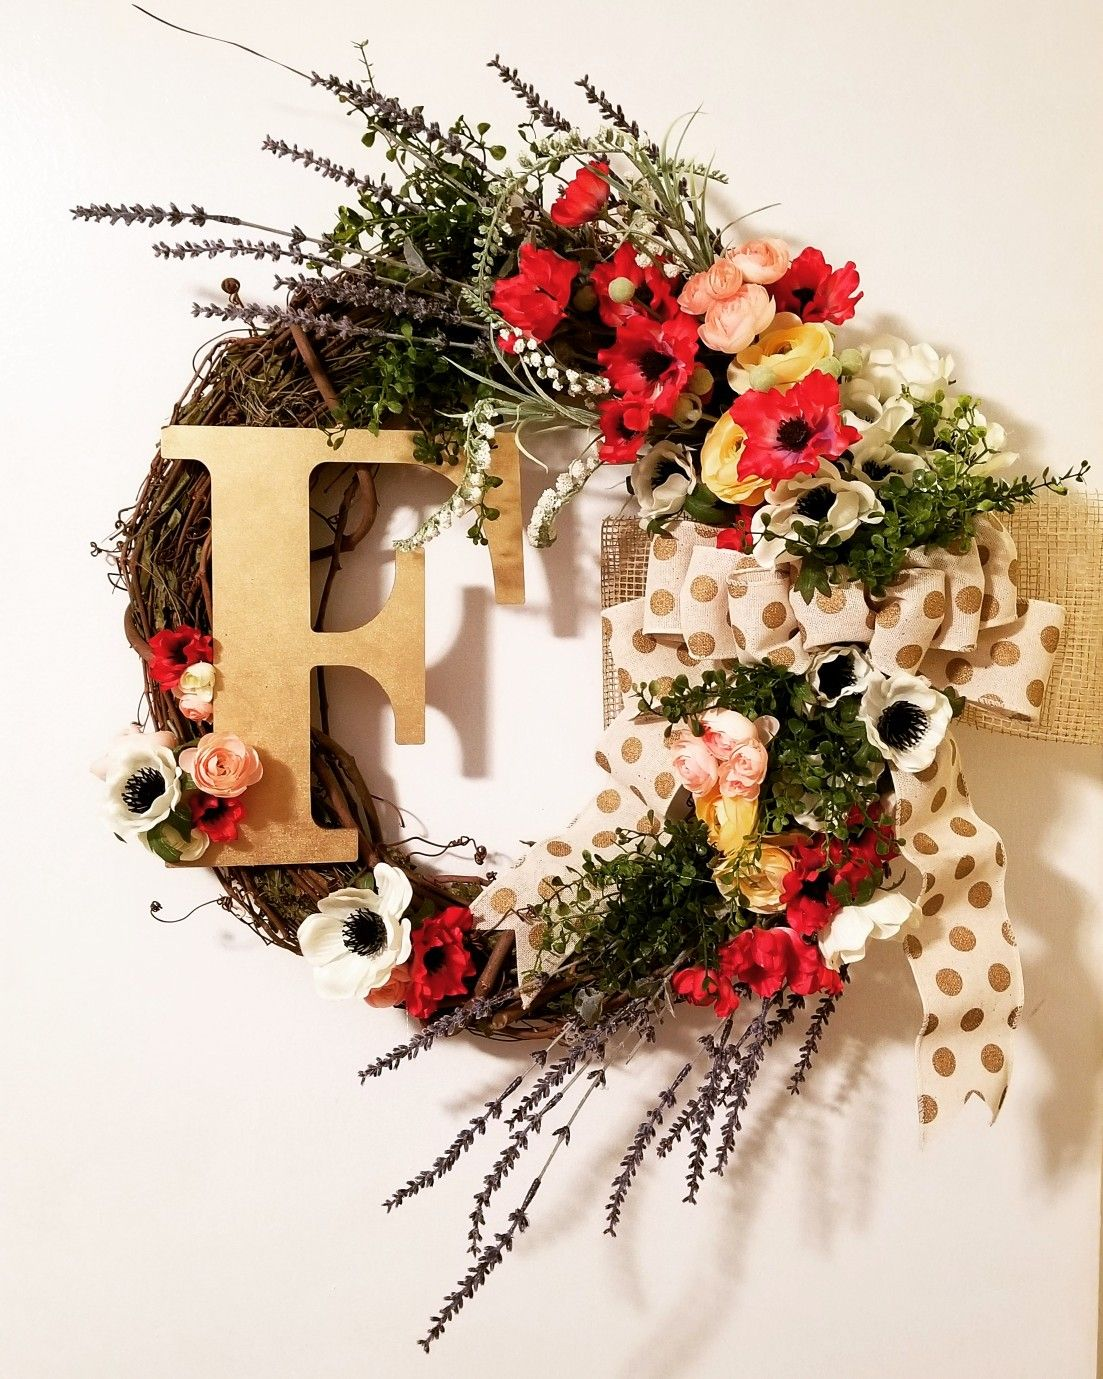 Grapevine Wreath With Wood Letter Spring Wreath Wreaths Grapevine Wreath